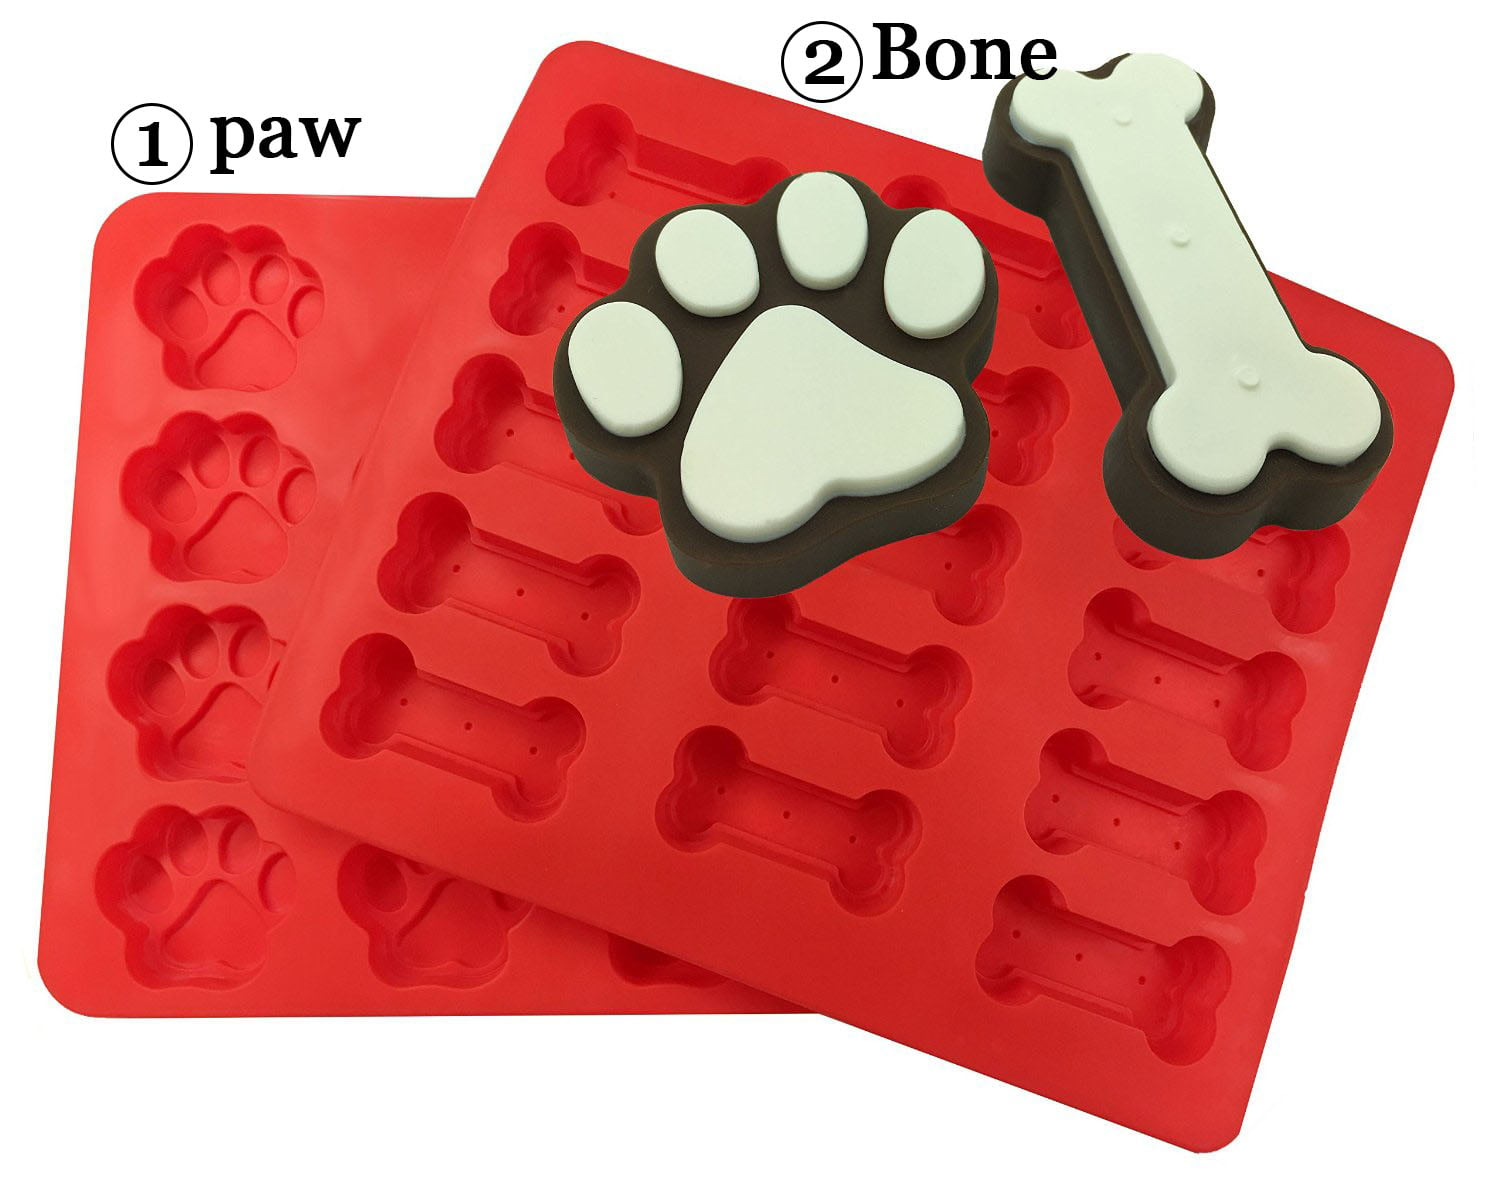 CHARMED Kitchen Dog Treats Silicone Cookie Cake Pan Mold Bone-Shaped and Paw Prints; Pack of 2 by